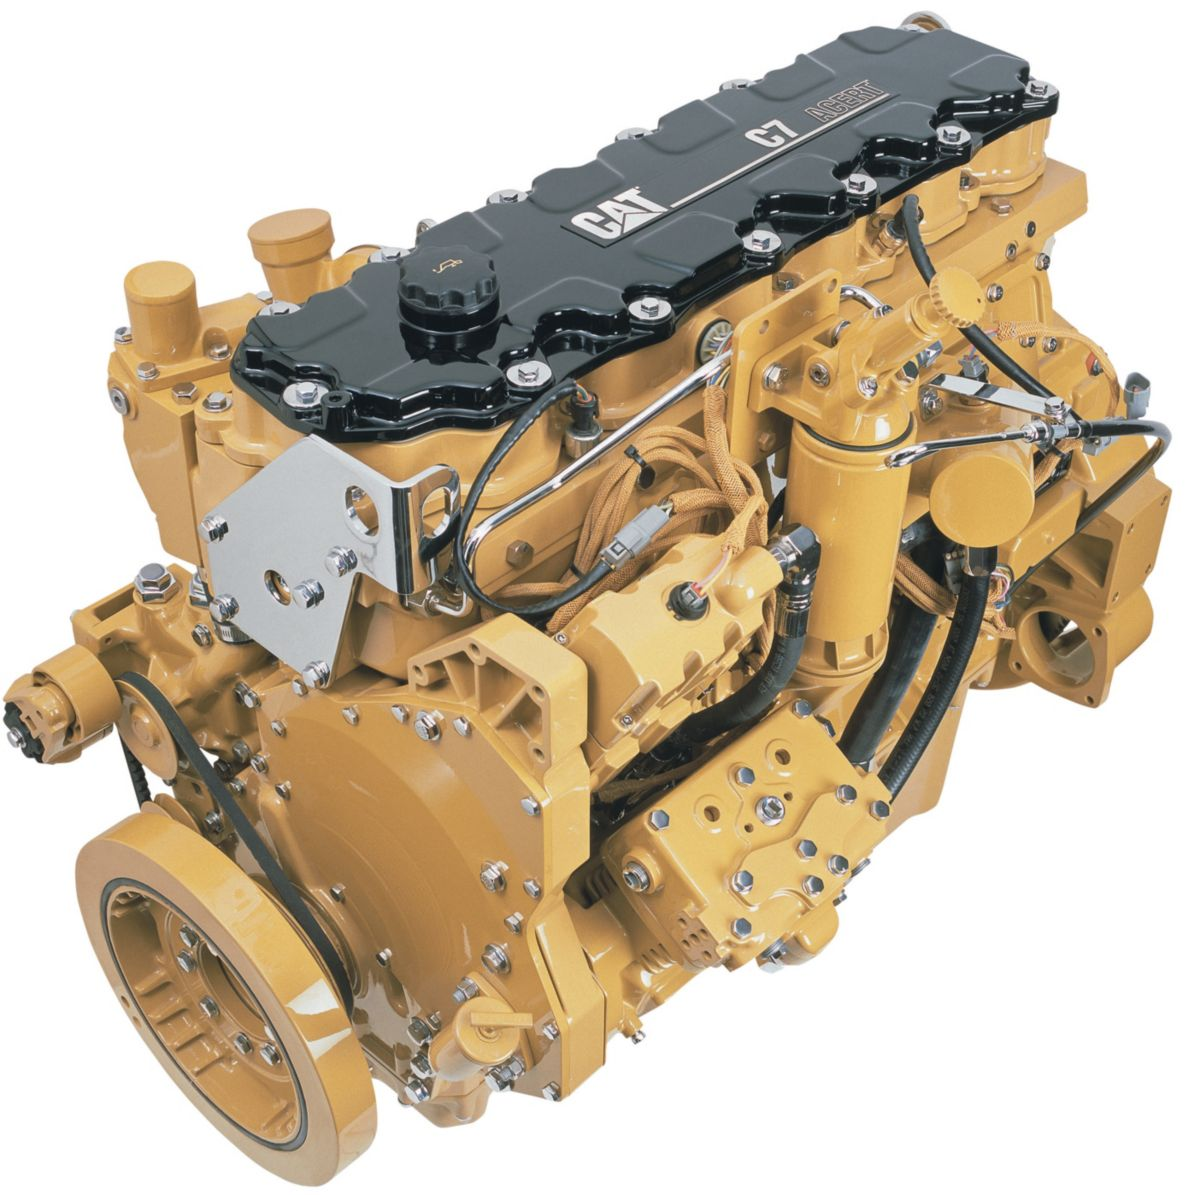 hight resolution of cat c7 engine with acert technology